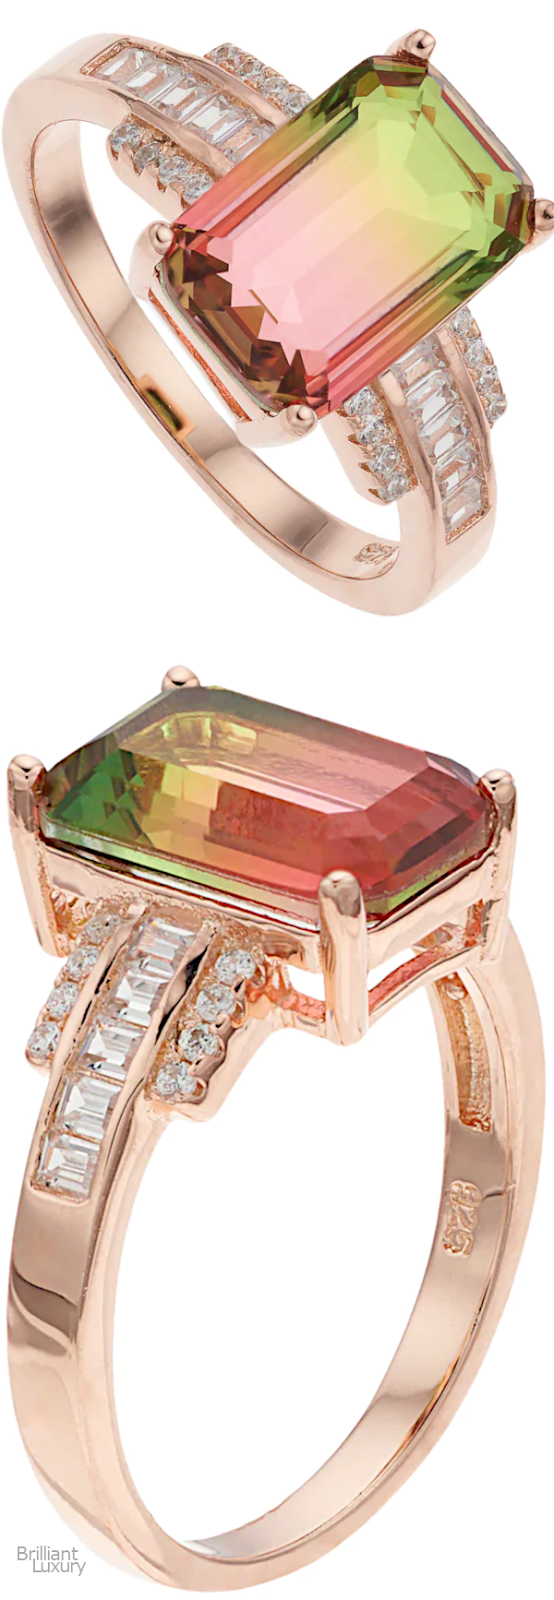 Brilliant Luxury♦18k Rose Gold Over Silver Watermelon Cubic Zirconia Ring